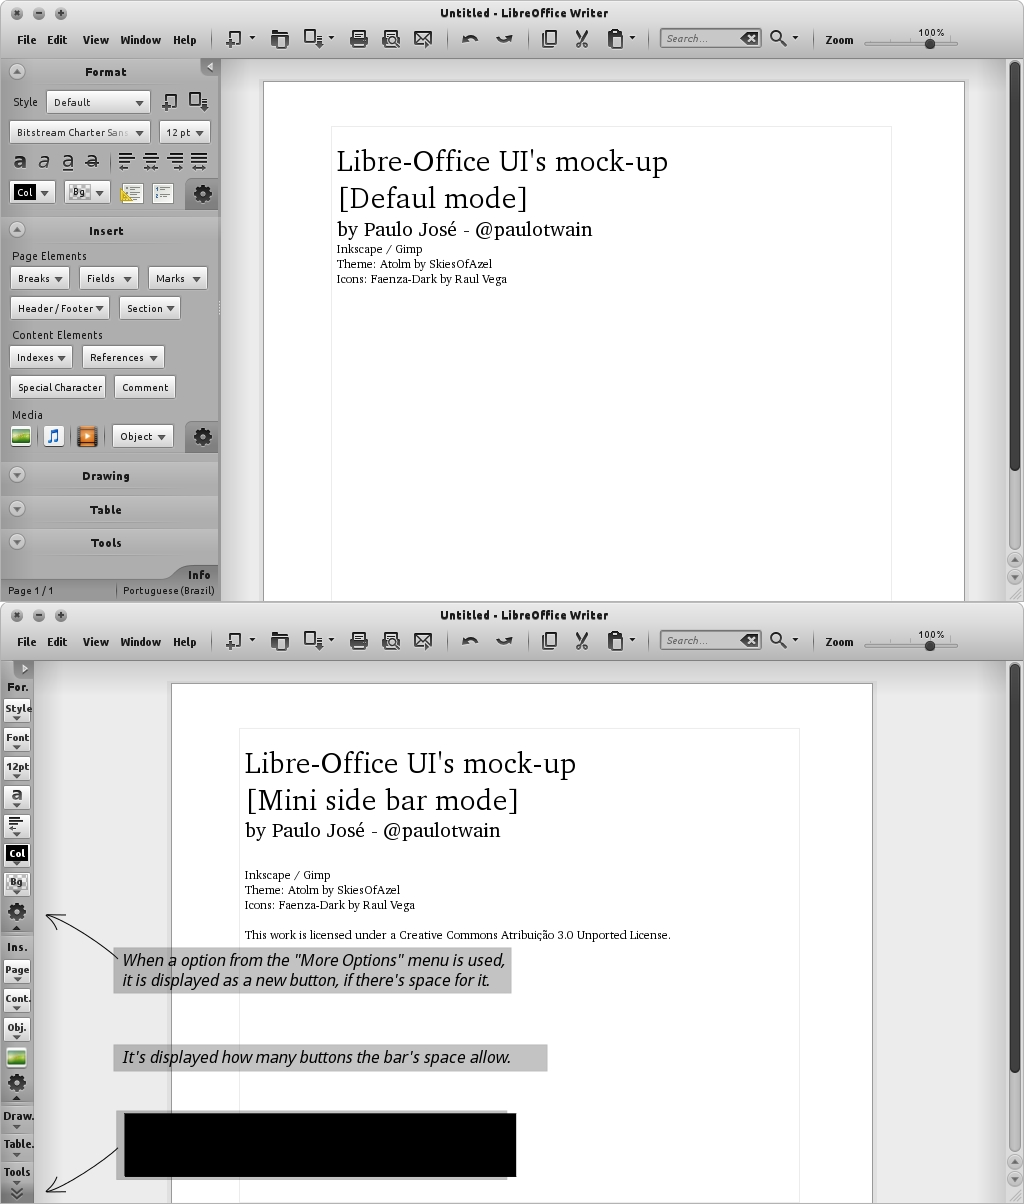 libreoffice_ui_mock_up_light_3